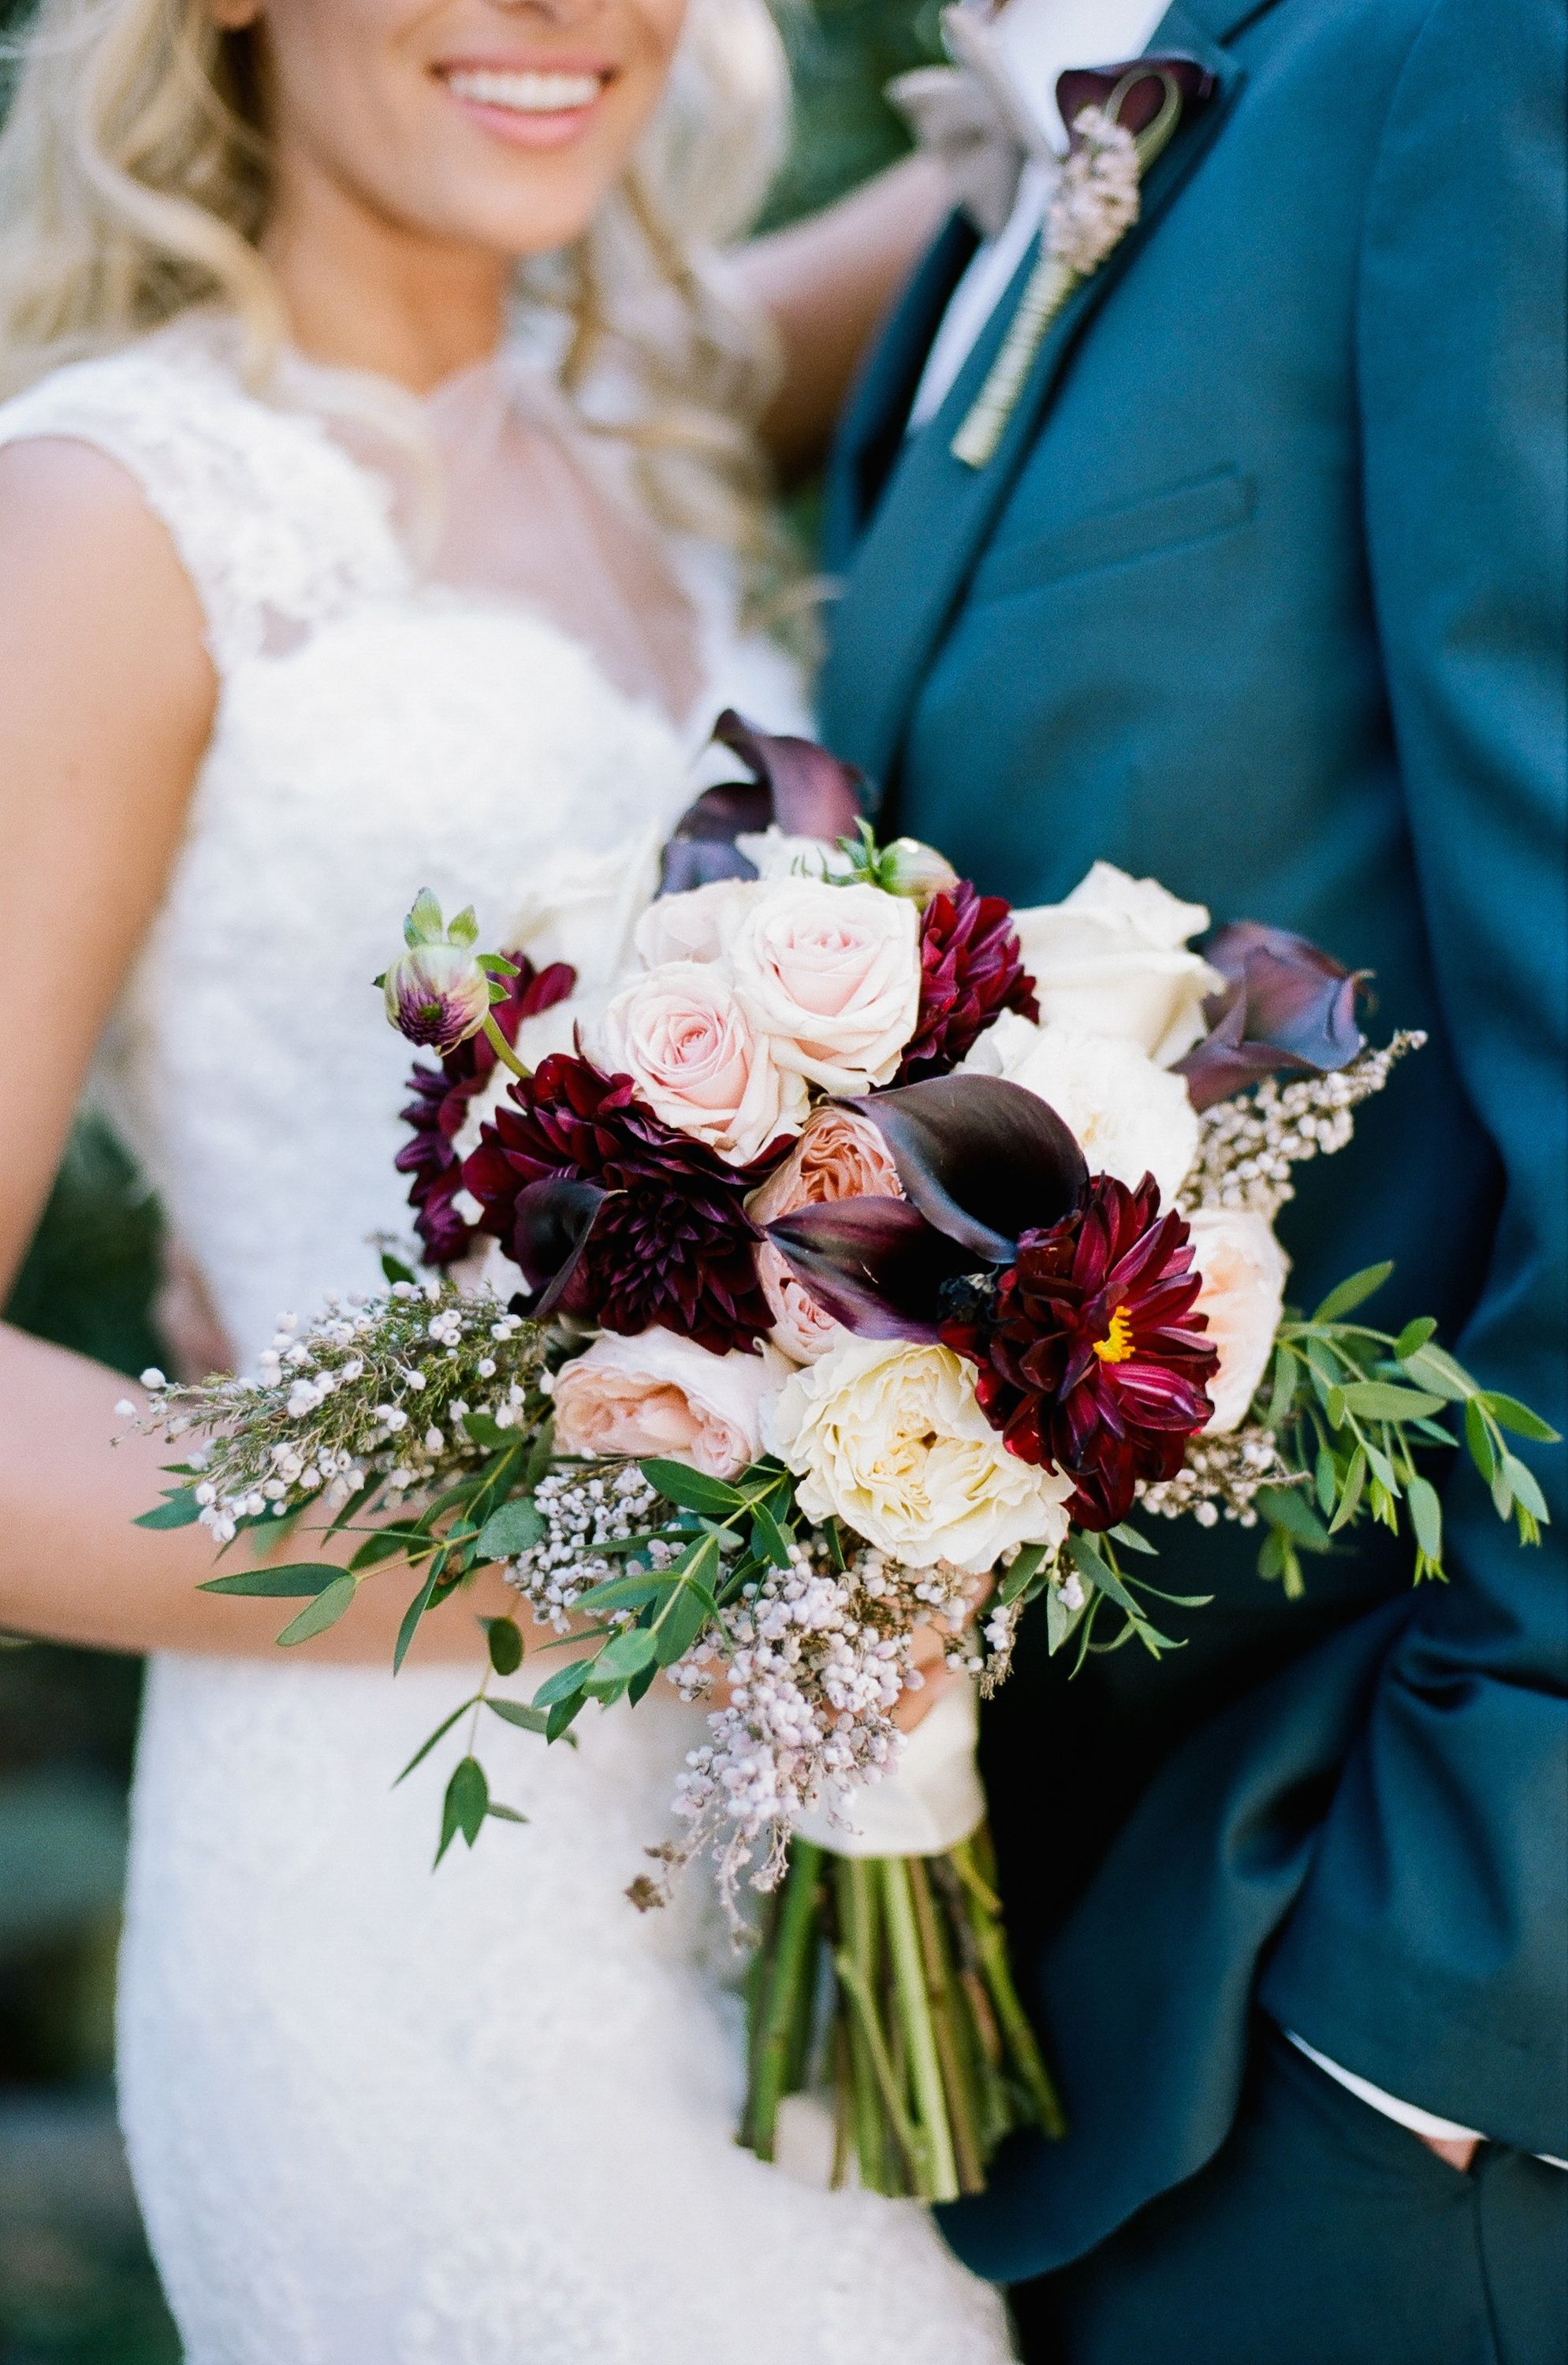 20 best fall wedding flowers wedding bouquets and centerpieces 20 best fall wedding flowers wedding bouquets and centerpieces for fall junglespirit Gallery